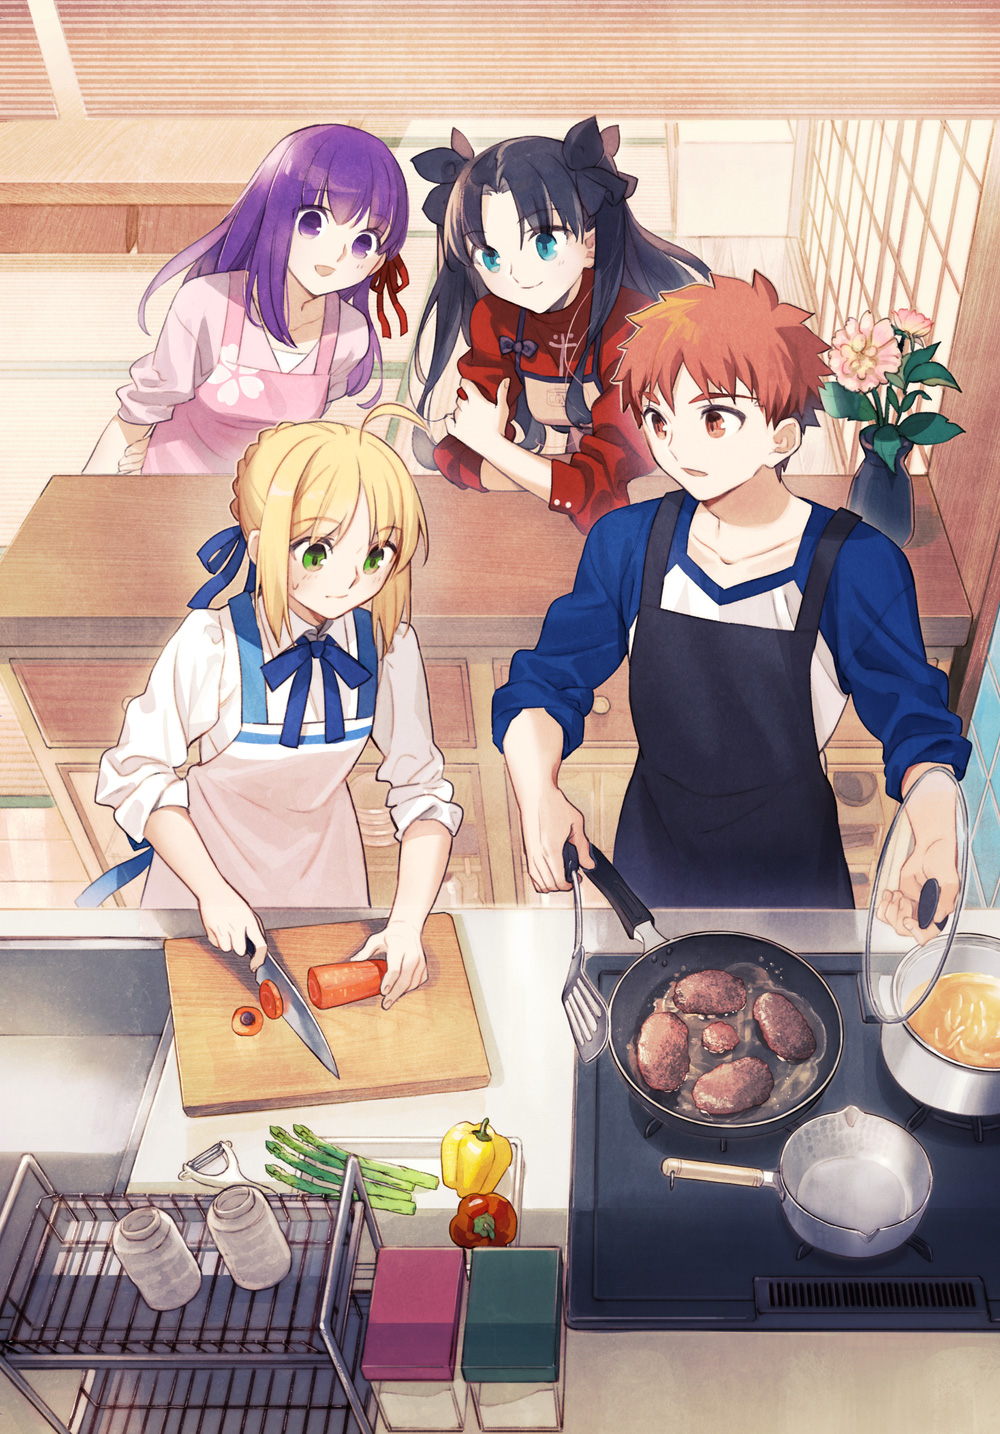 game Today's Menu for the Emiya Family